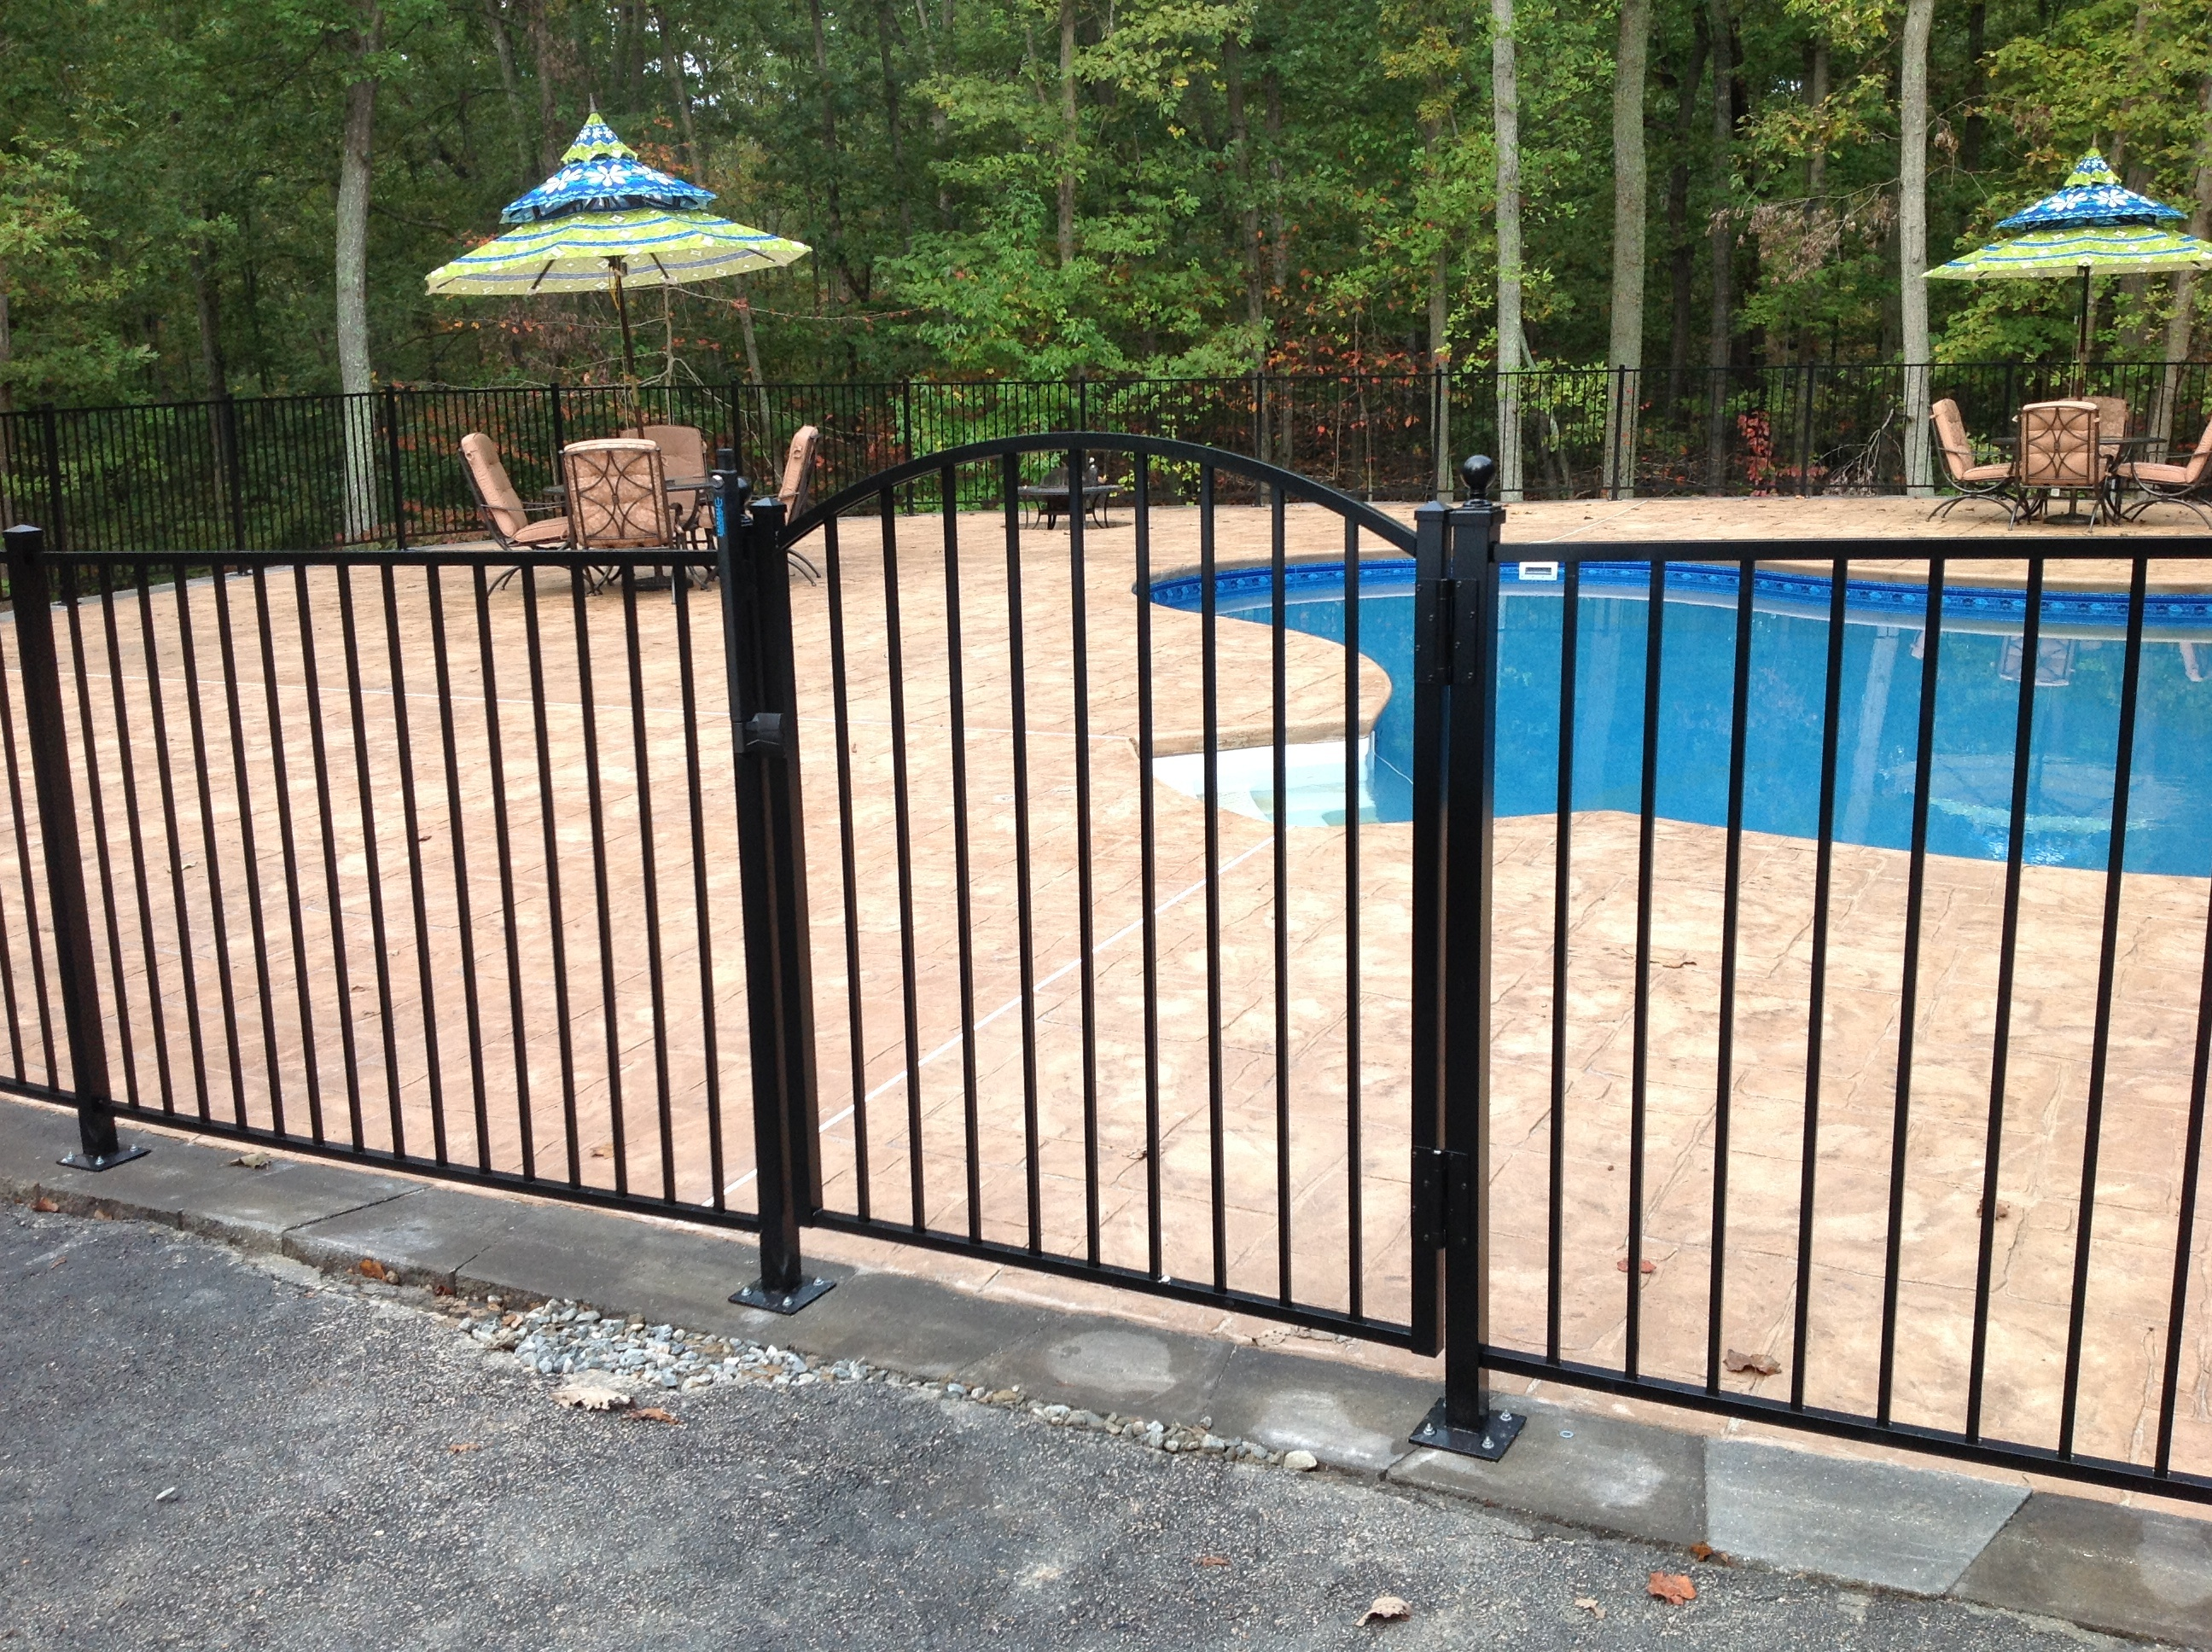 Swimming Pool in RIchmond Virginia enclosed by an Ornamental Aluminum Fence